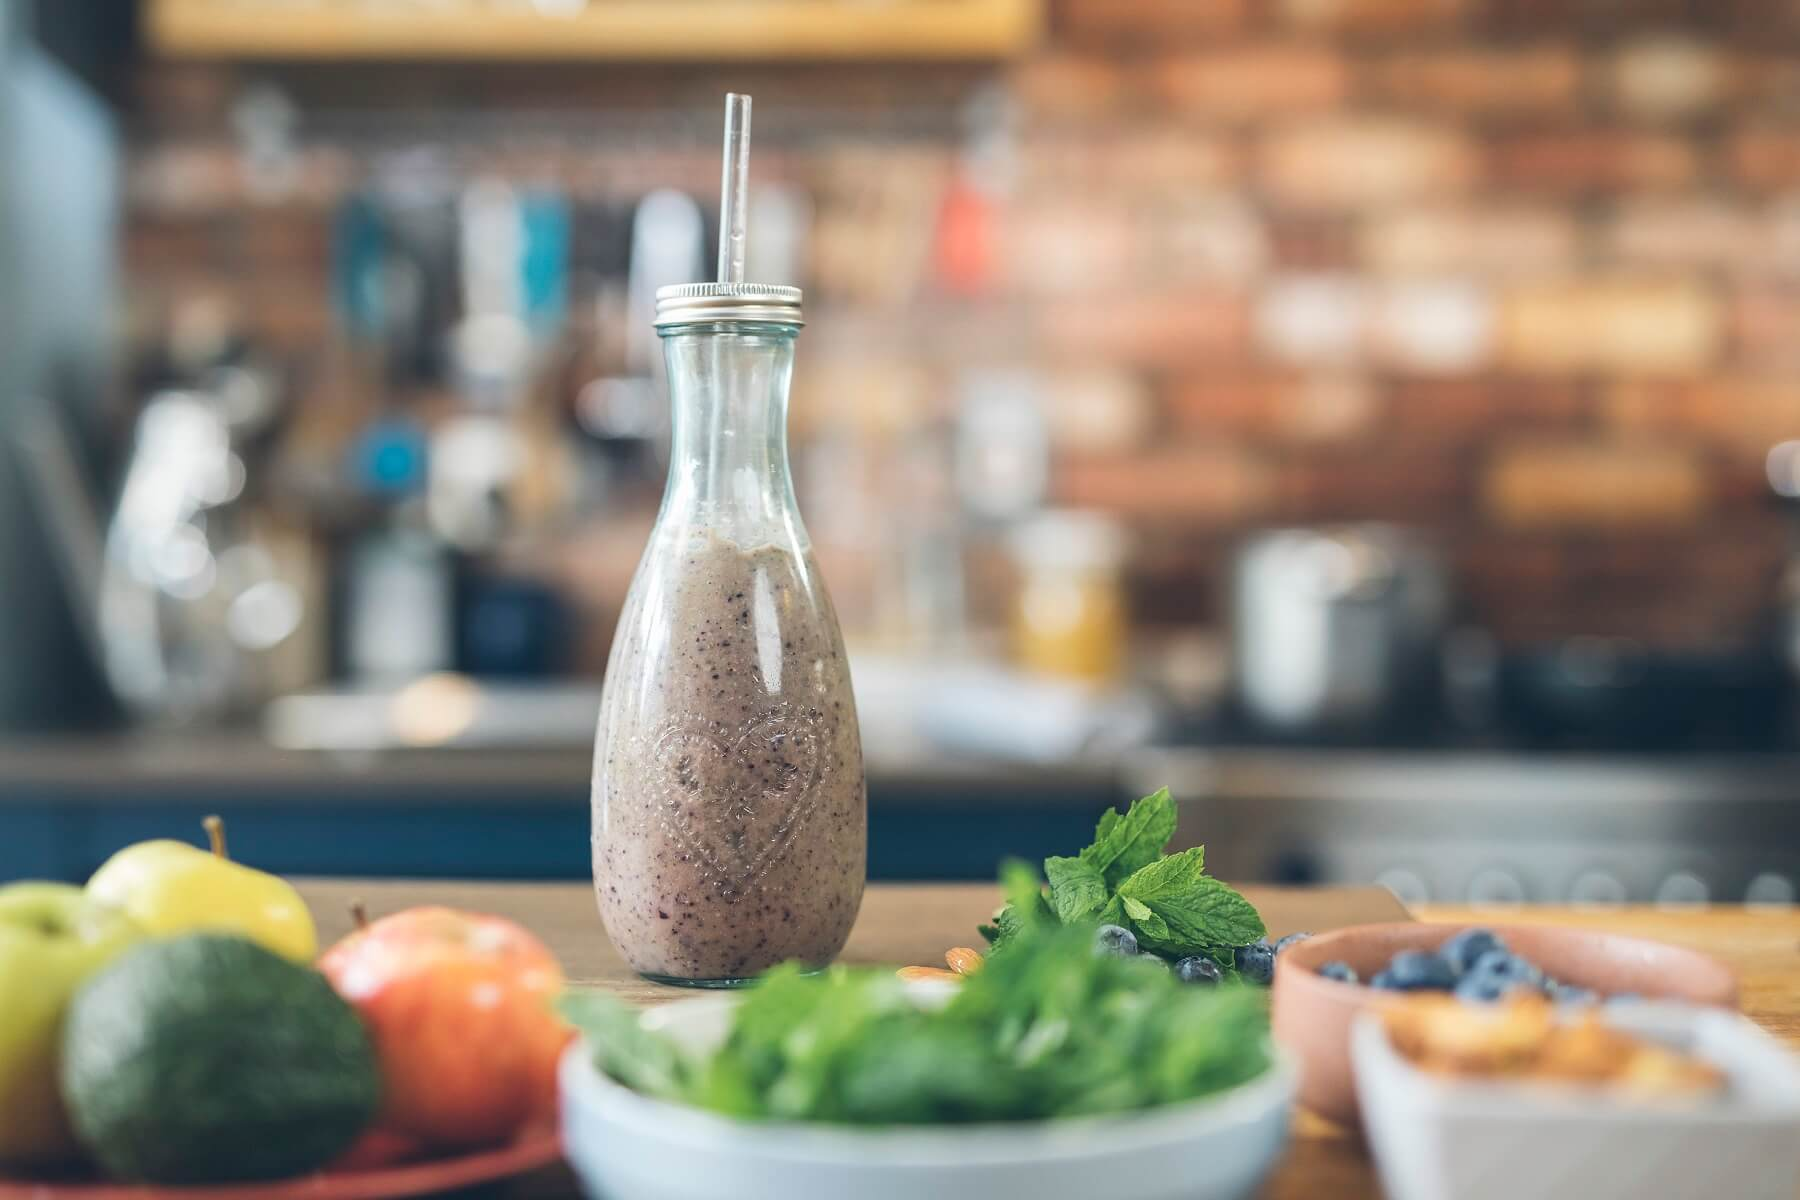 Winter Immune Booster Smoothie in jar with straw